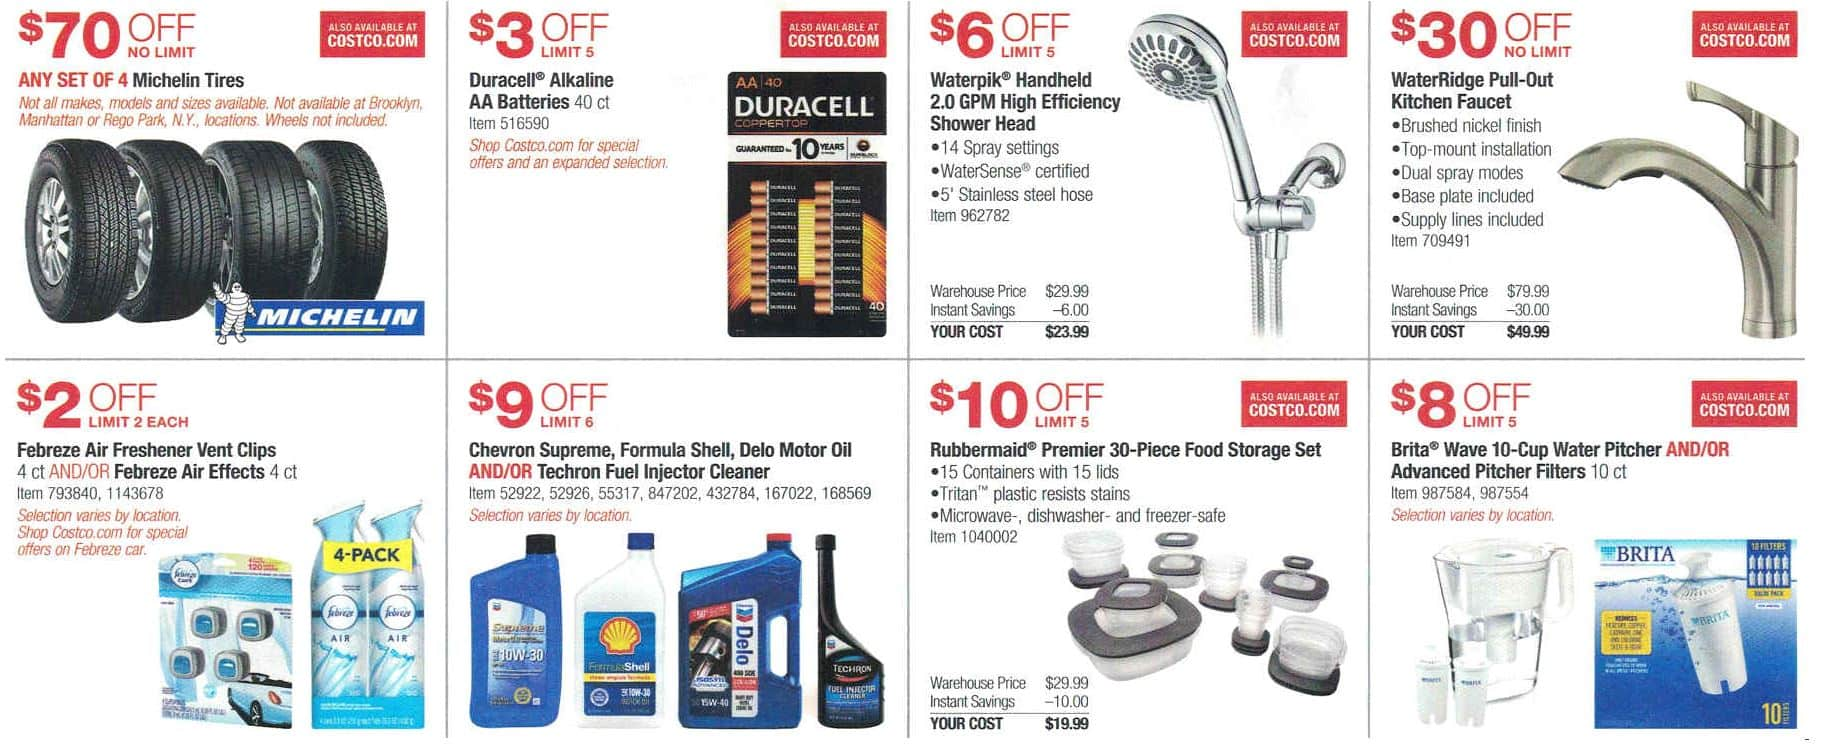 costco coupon book net for other costco coupons and offers check out the costco coupons page on slickdeals